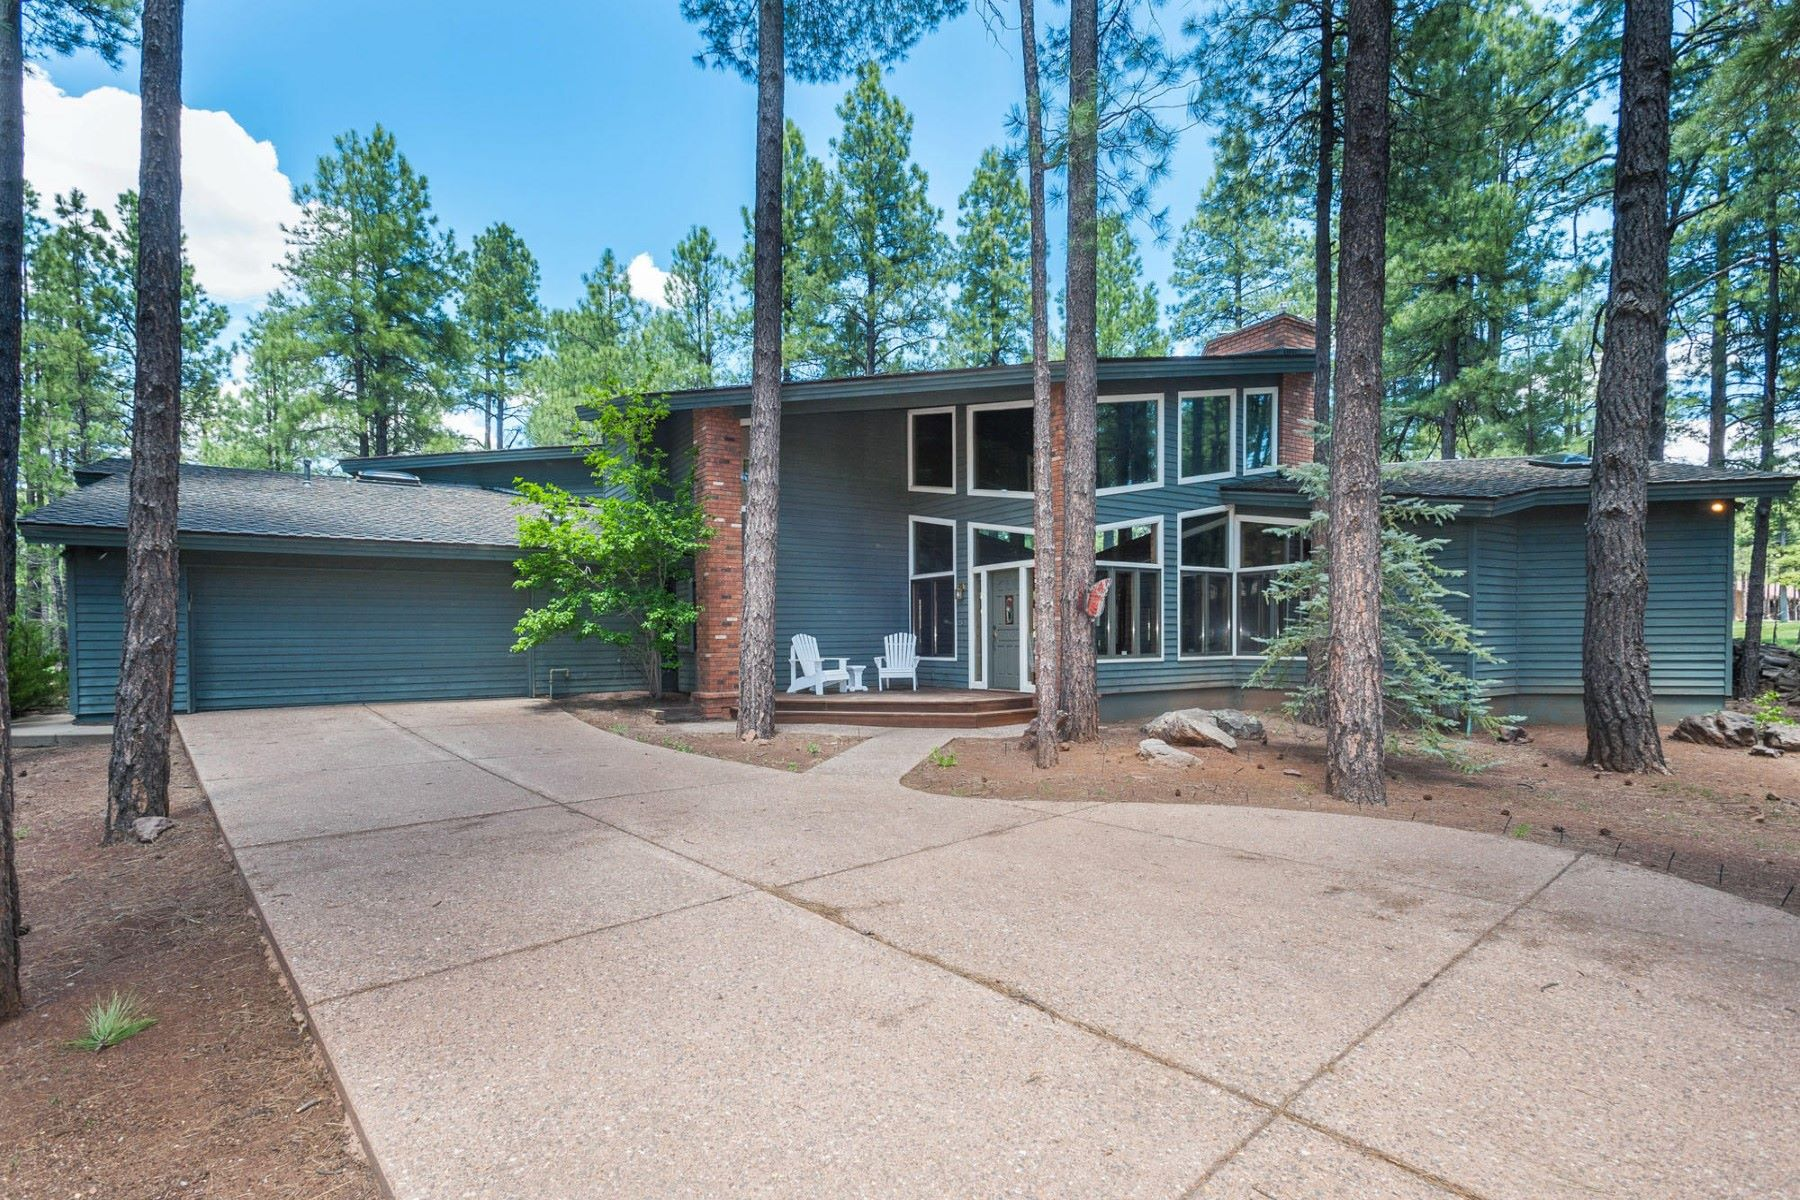 Maison unifamiliale pour l Vente à Beautiful flagstaff home with incredible views 112-3799 Bear Howard Flagstaff, Arizona, 86001 États-Unis